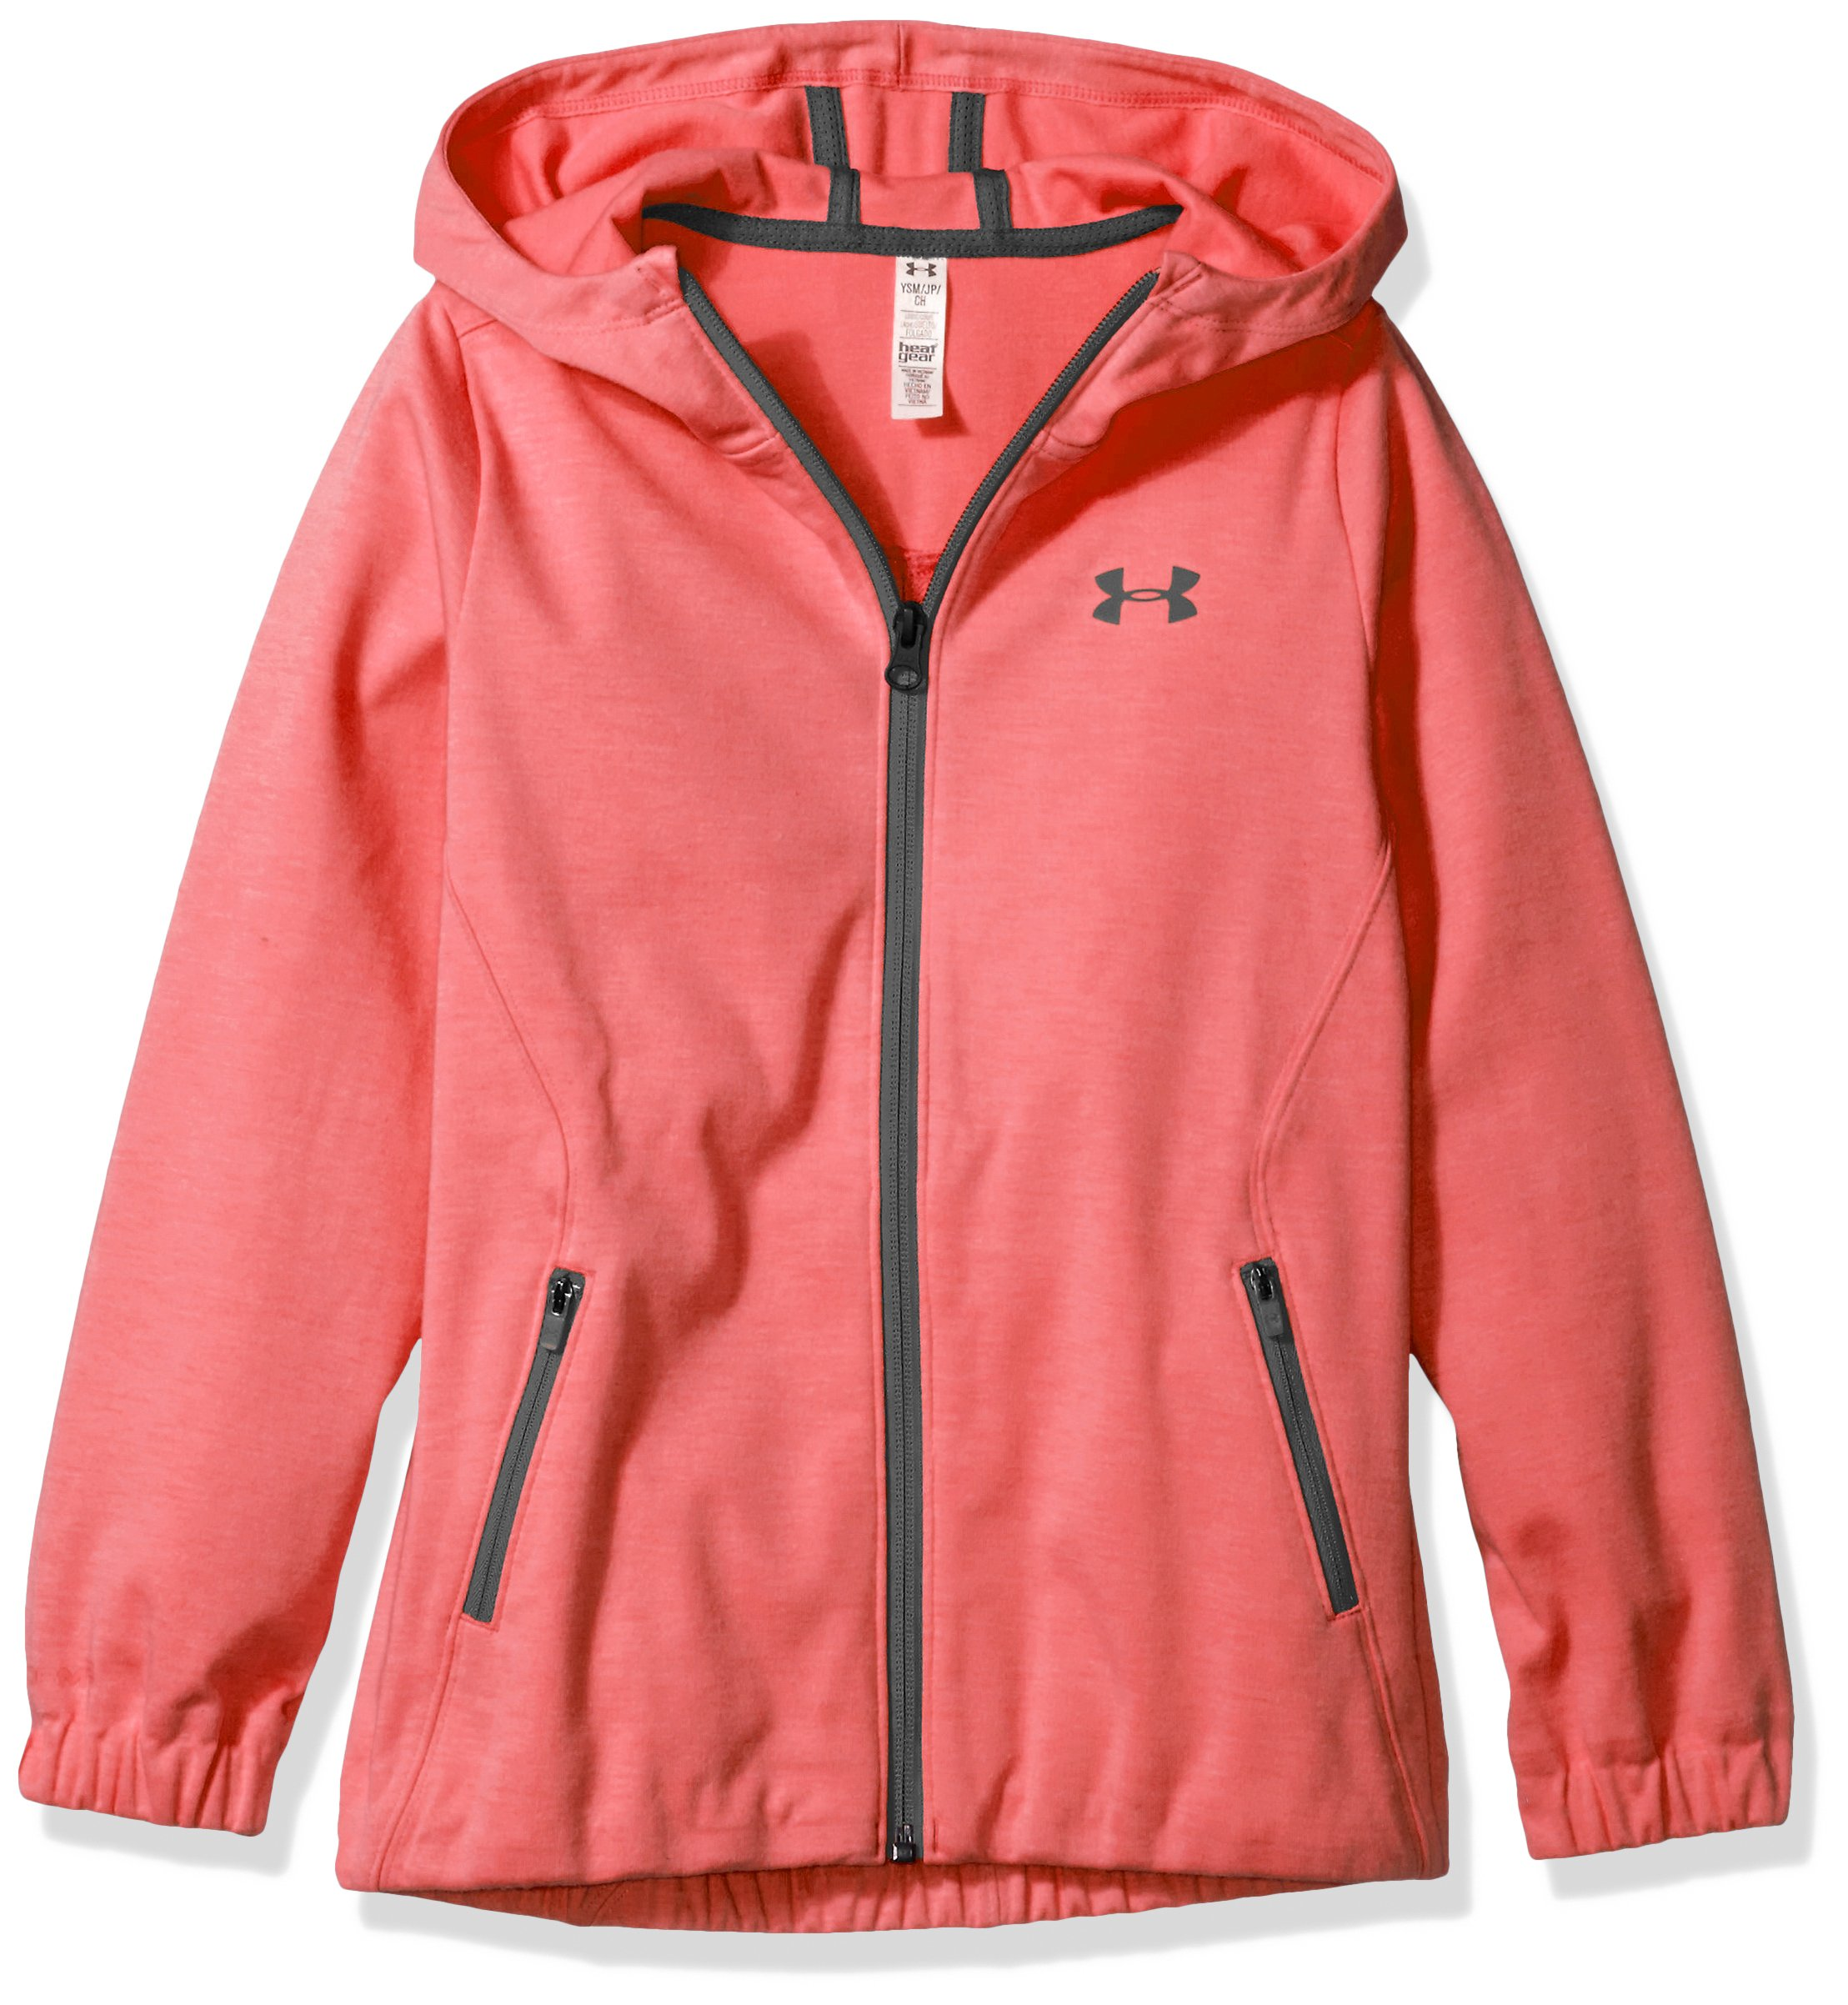 Under Armour Girls' Spring Swacket, Gala /Rhino Gray, Youth Large by Under Armour